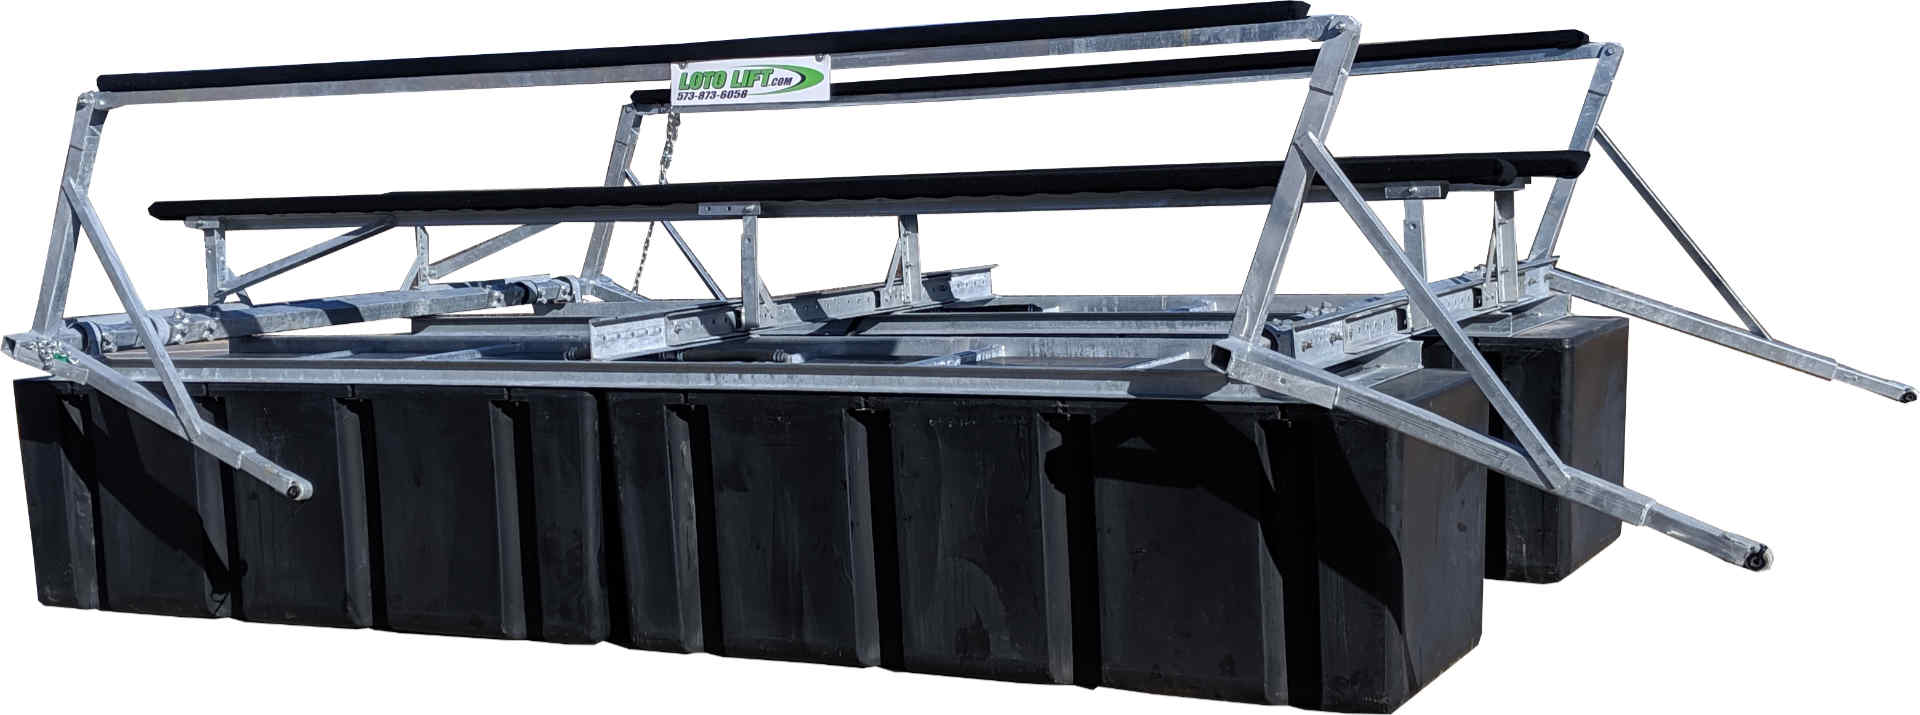 LOTO Lift's strongest boat lift designed for rough water.